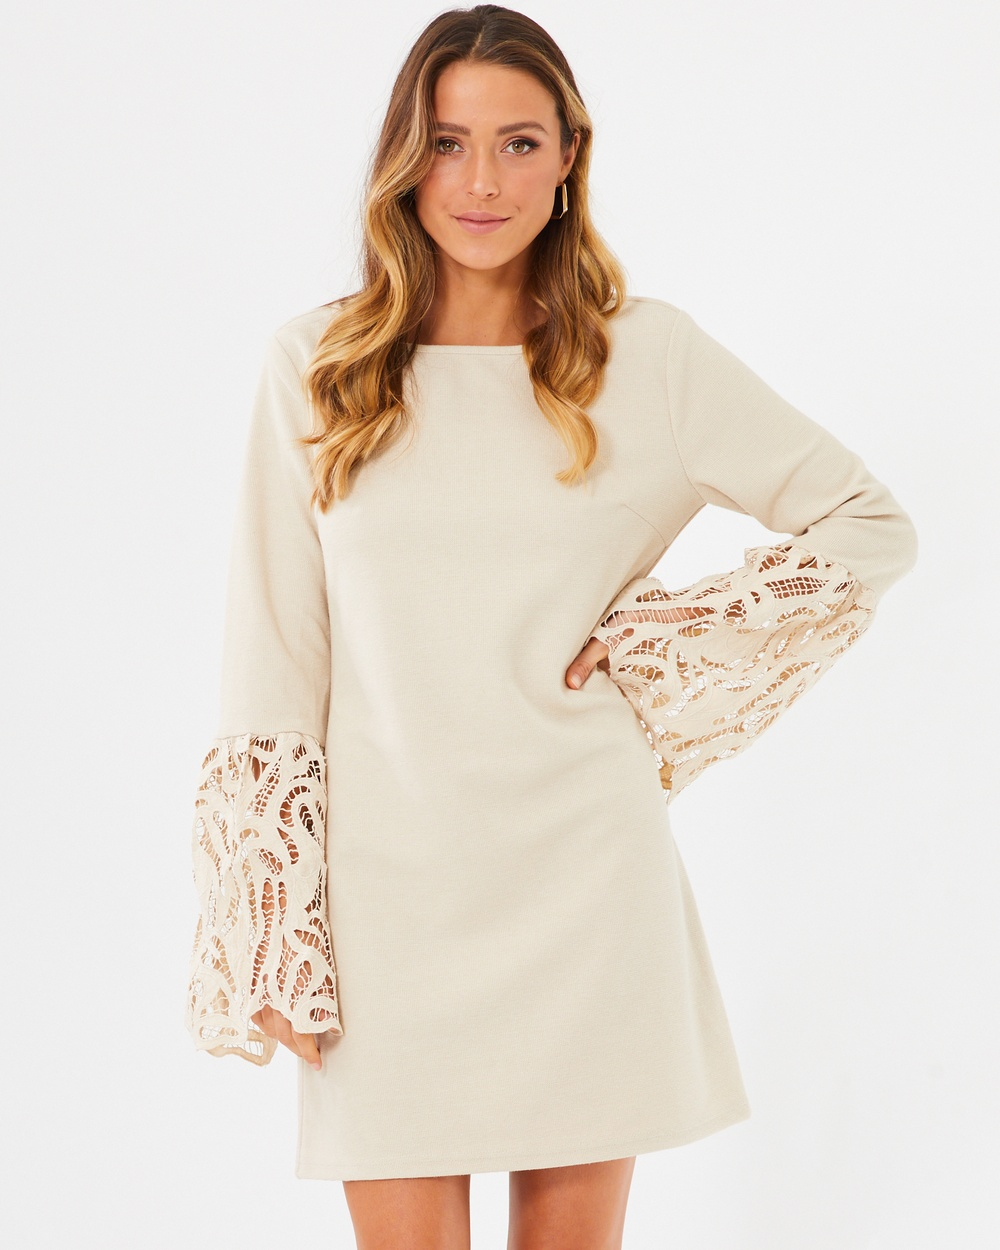 Calli Loretta Dress Dresses Powder White Loretta Dress